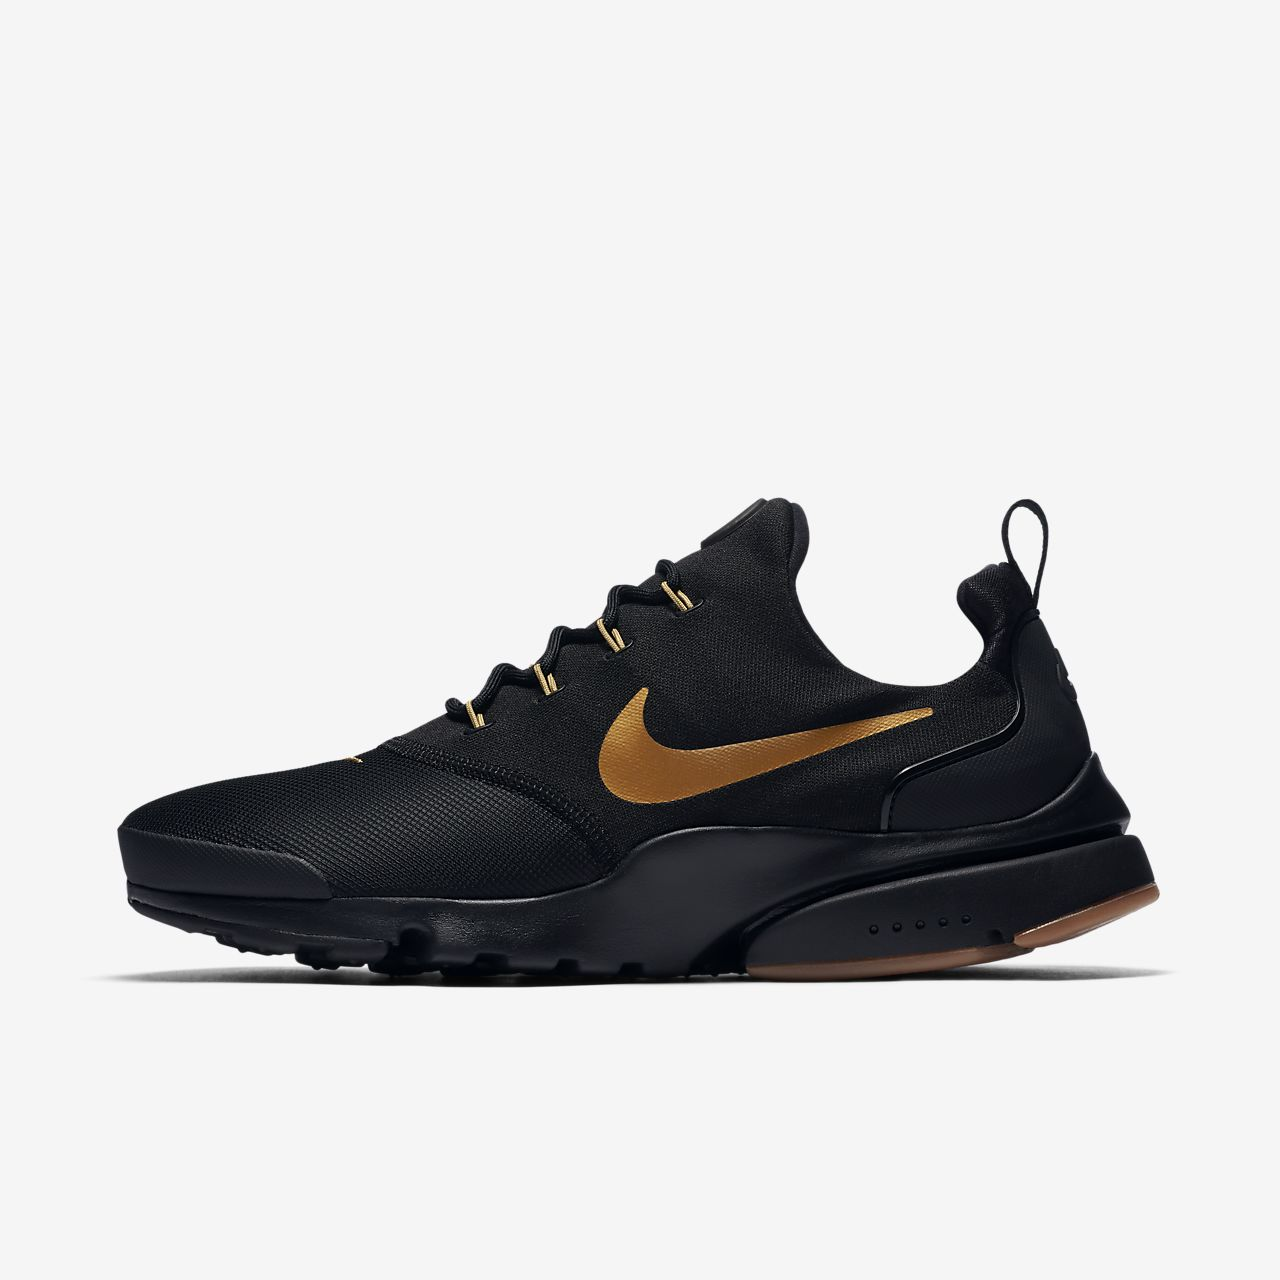 1c8f9ea6f41f Nike Presto Fly Men s Shoe. Nike.com IN